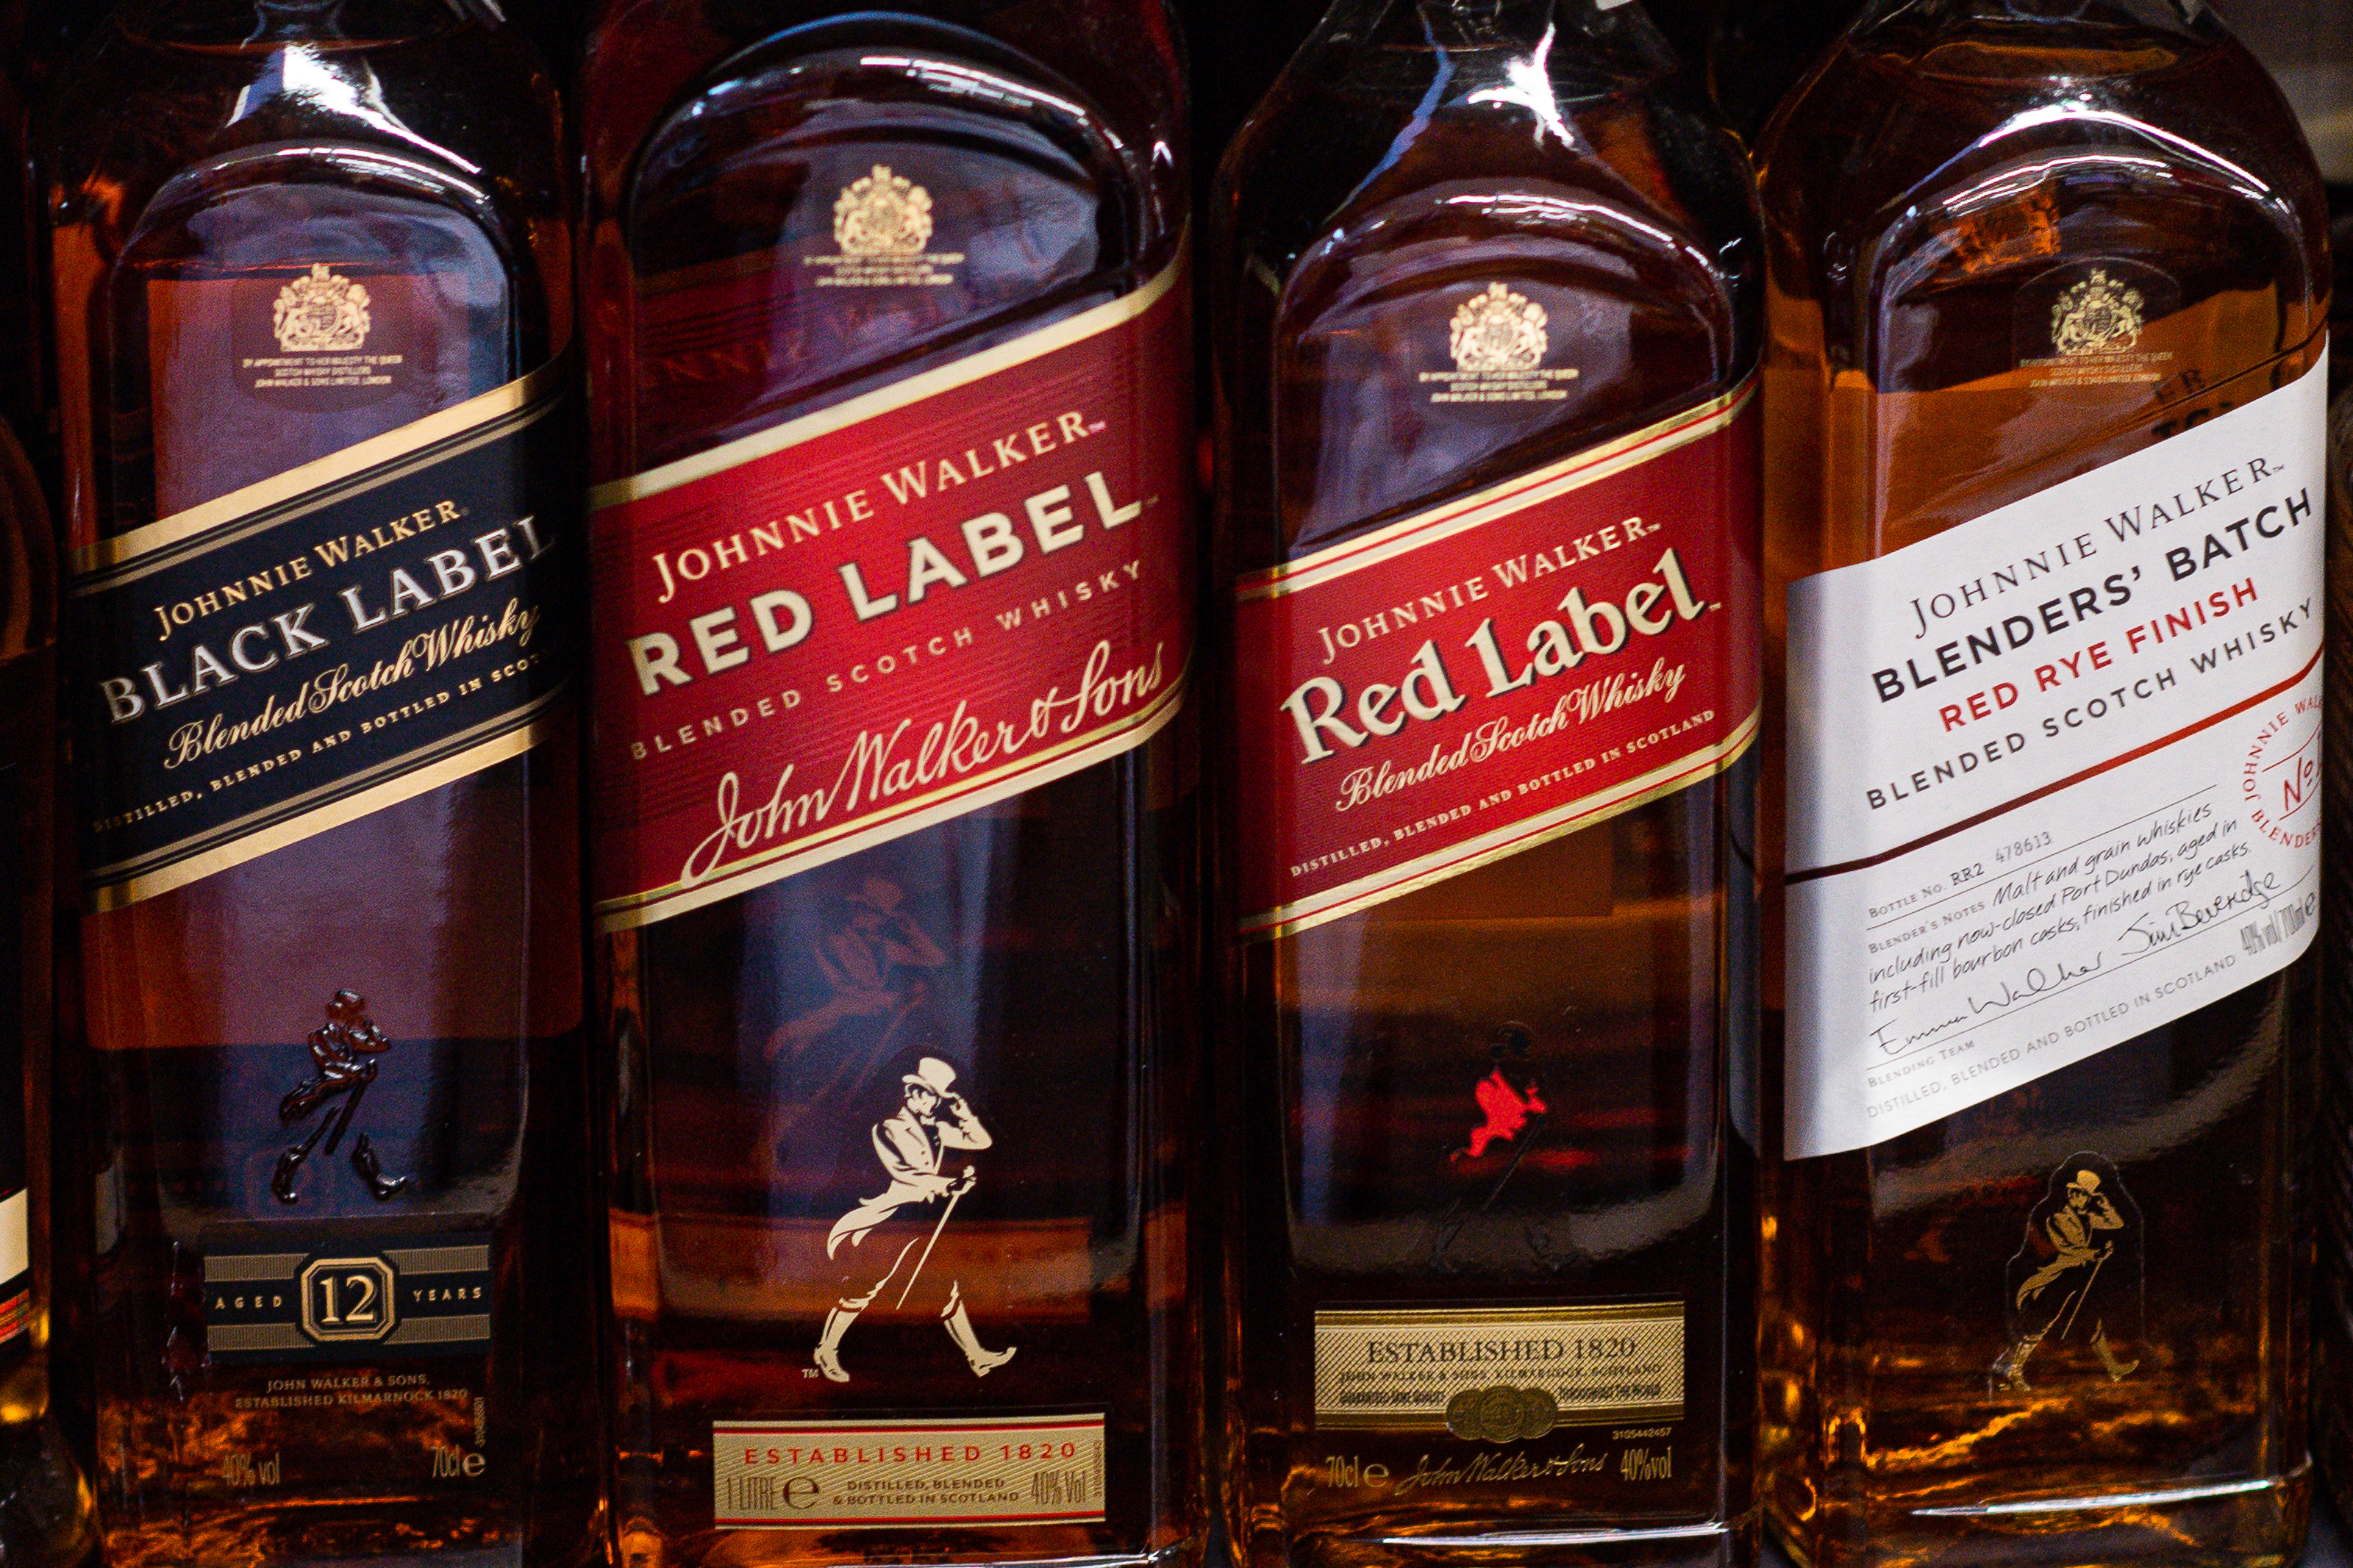 Johnnie Walker whiskey bottles seen at the grocery store...